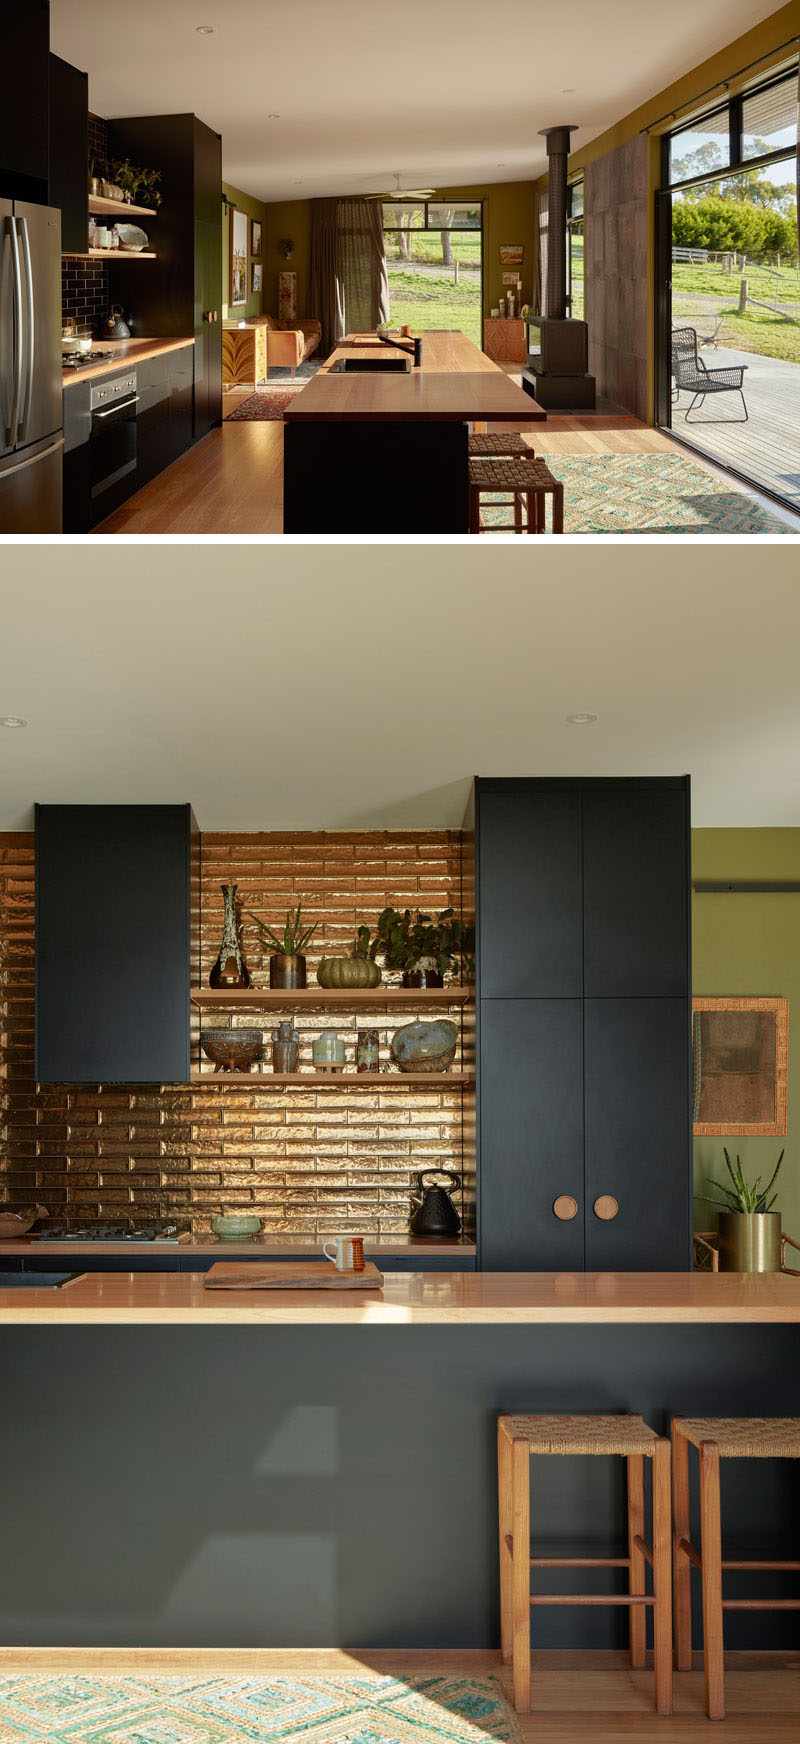 Sliding doors that fill the interior of this modern house with natural light and open the interior to the porch, creating indoor/outdoor living experience, while a metallic backsplash brightens up matte black kitchen cabinets. #ModernInterior #BlackKitchen #MetallicBacksplash